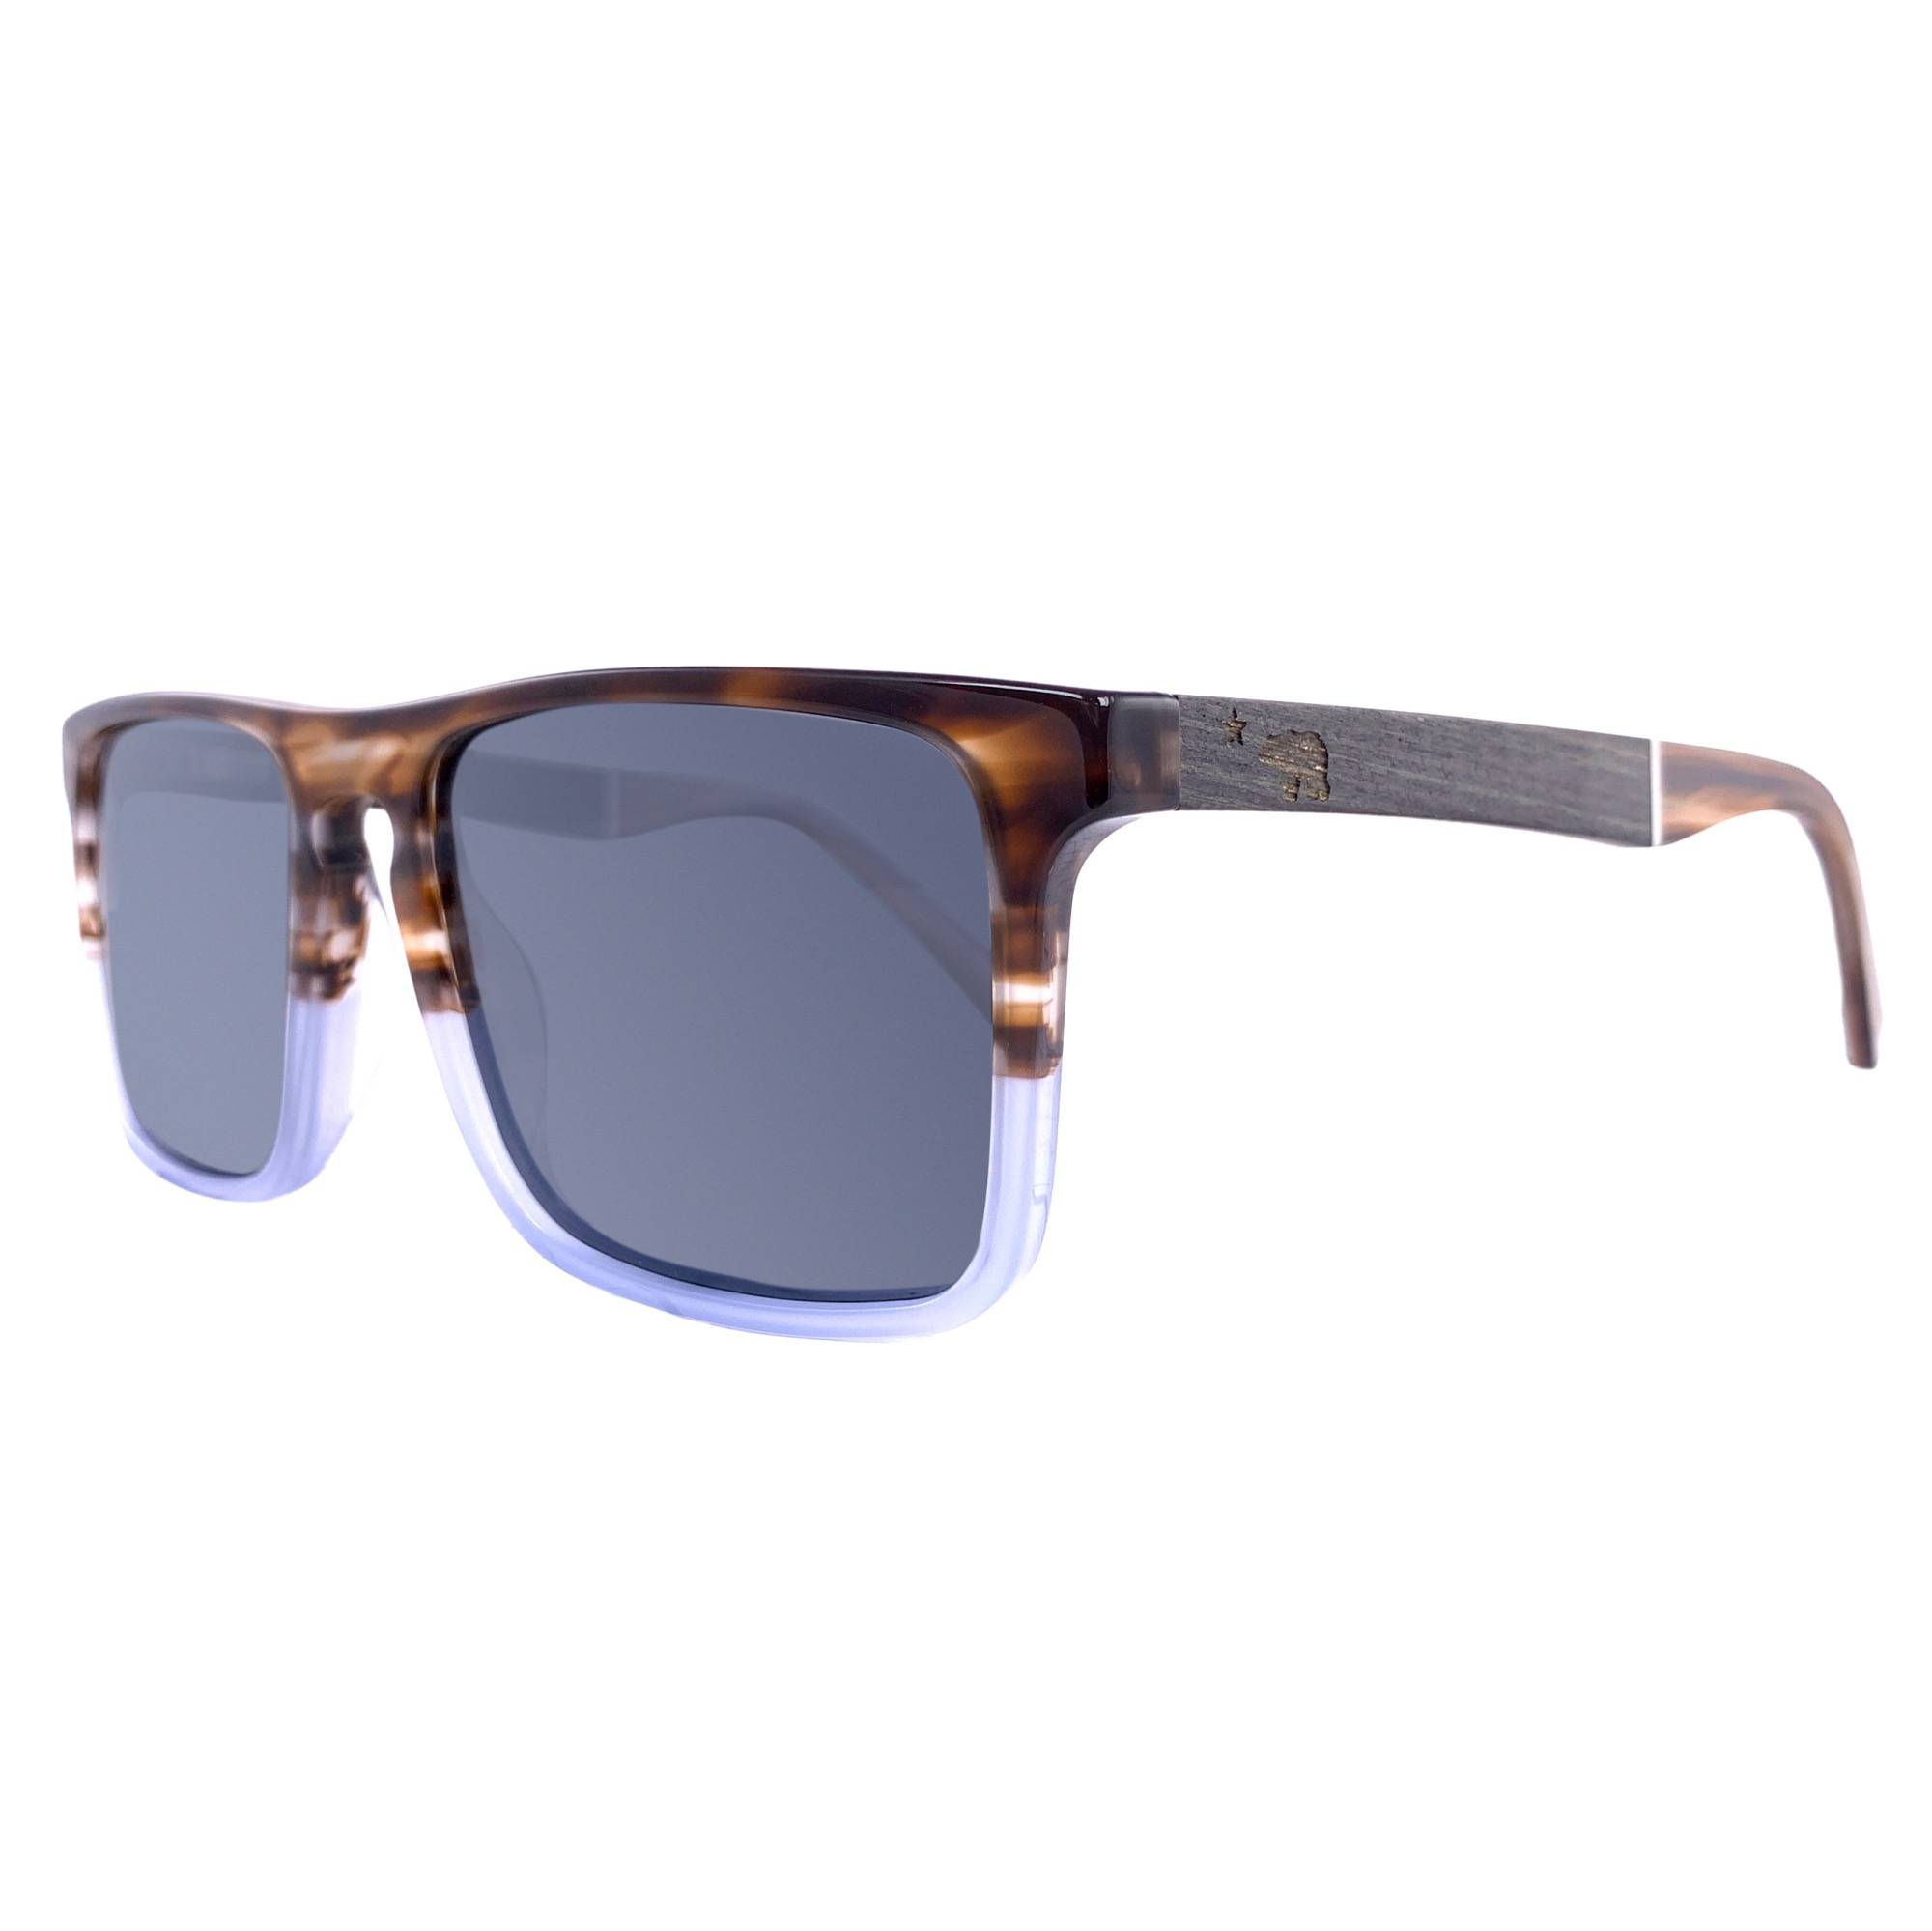 San Onofre Sunglasses